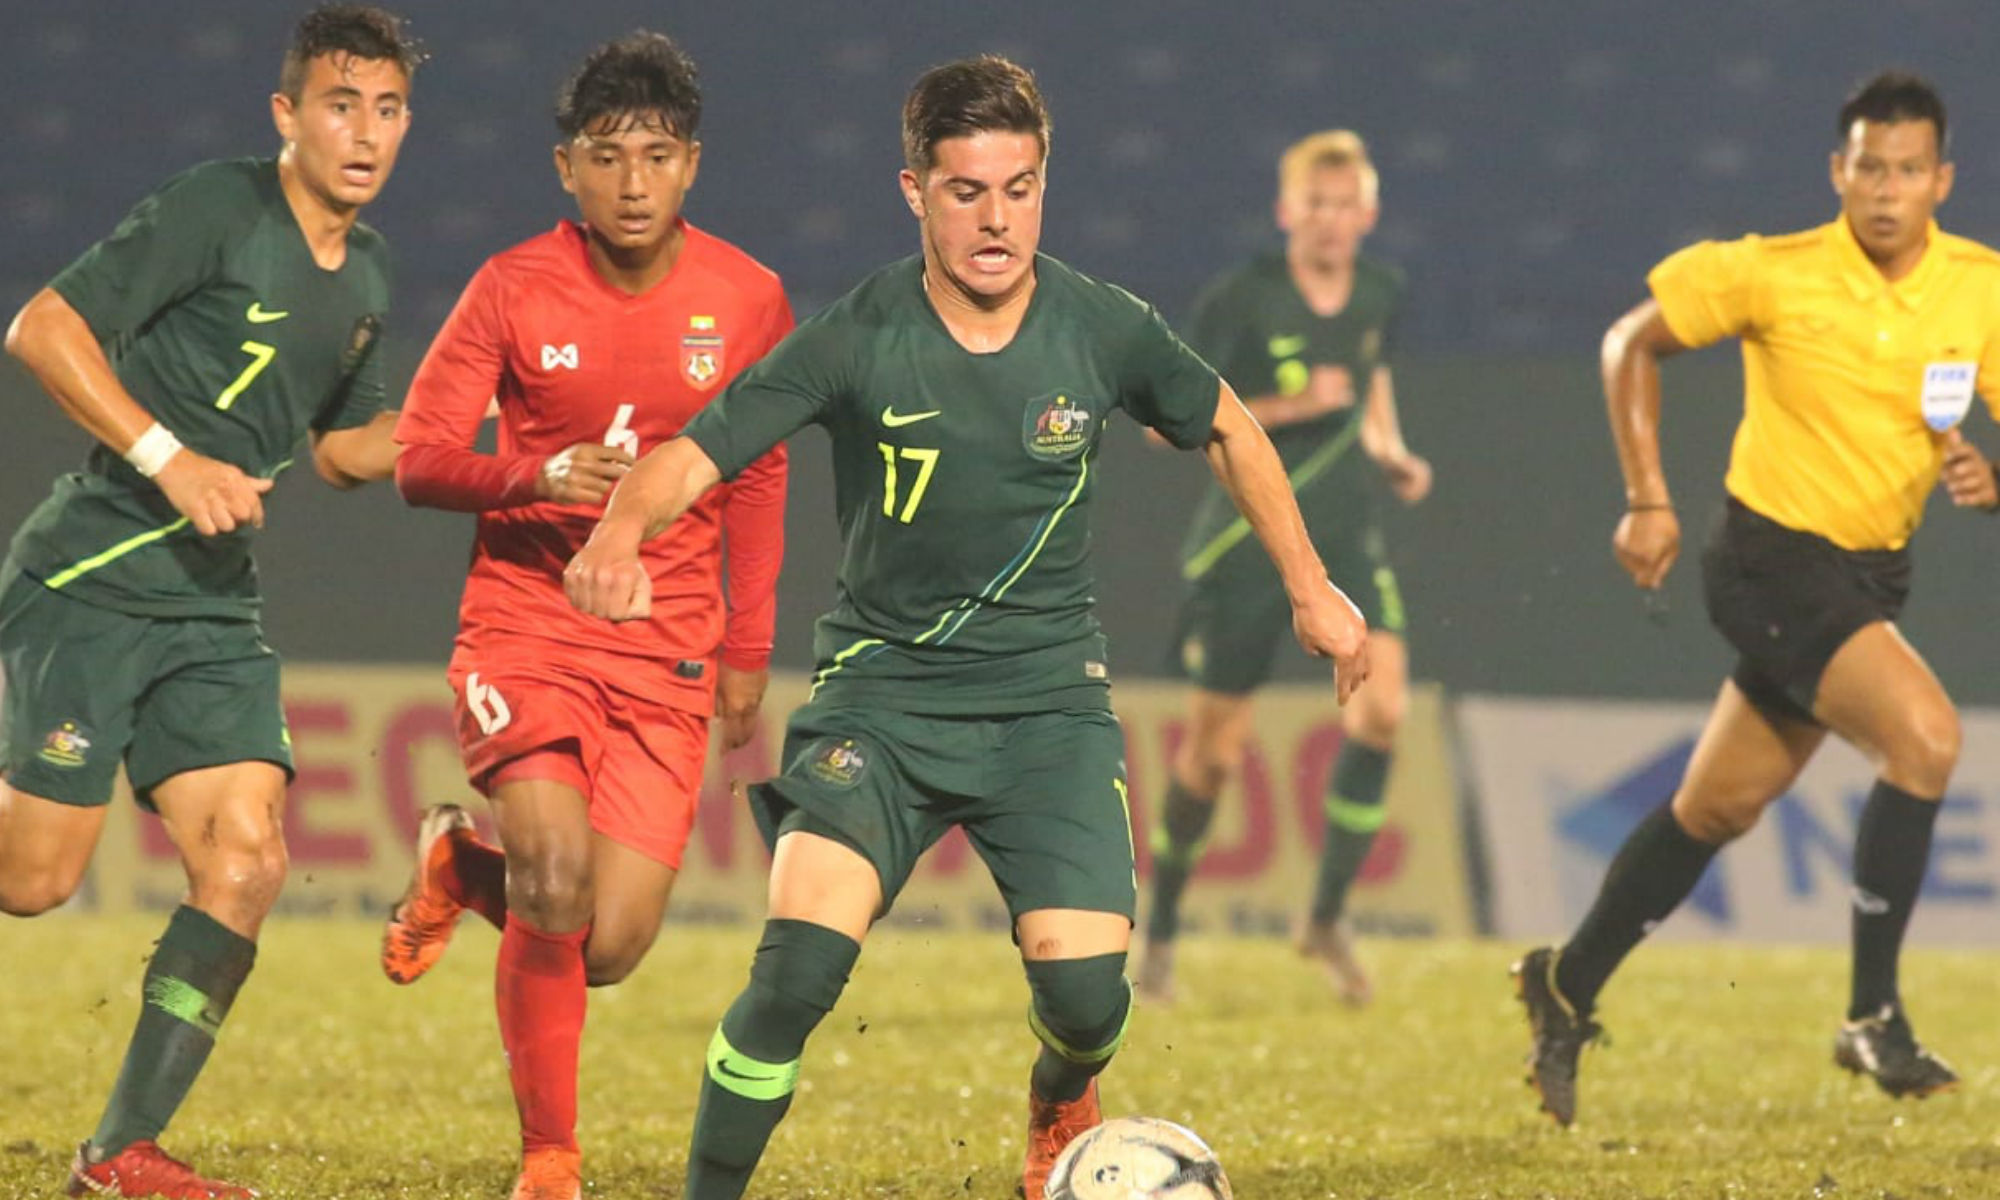 Australia come from behind to book ticket to AFF U-18 Championship Final